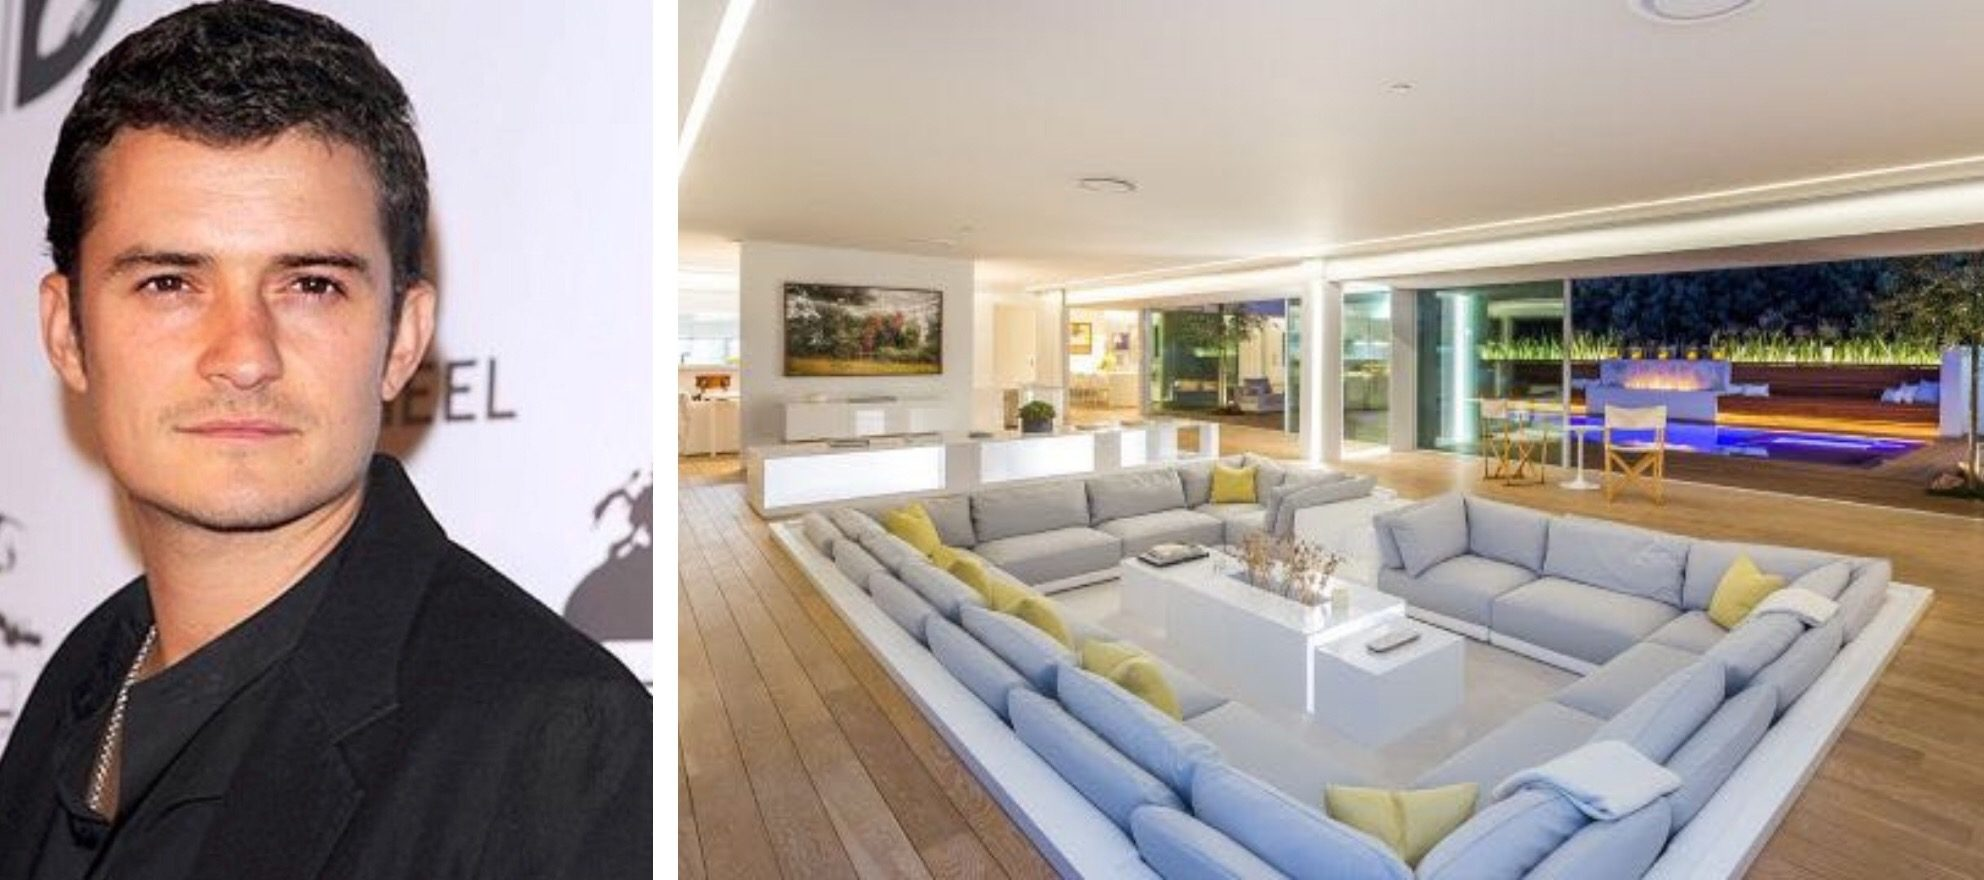 Orlando Bloom's bachelor pad hits the market for $9M